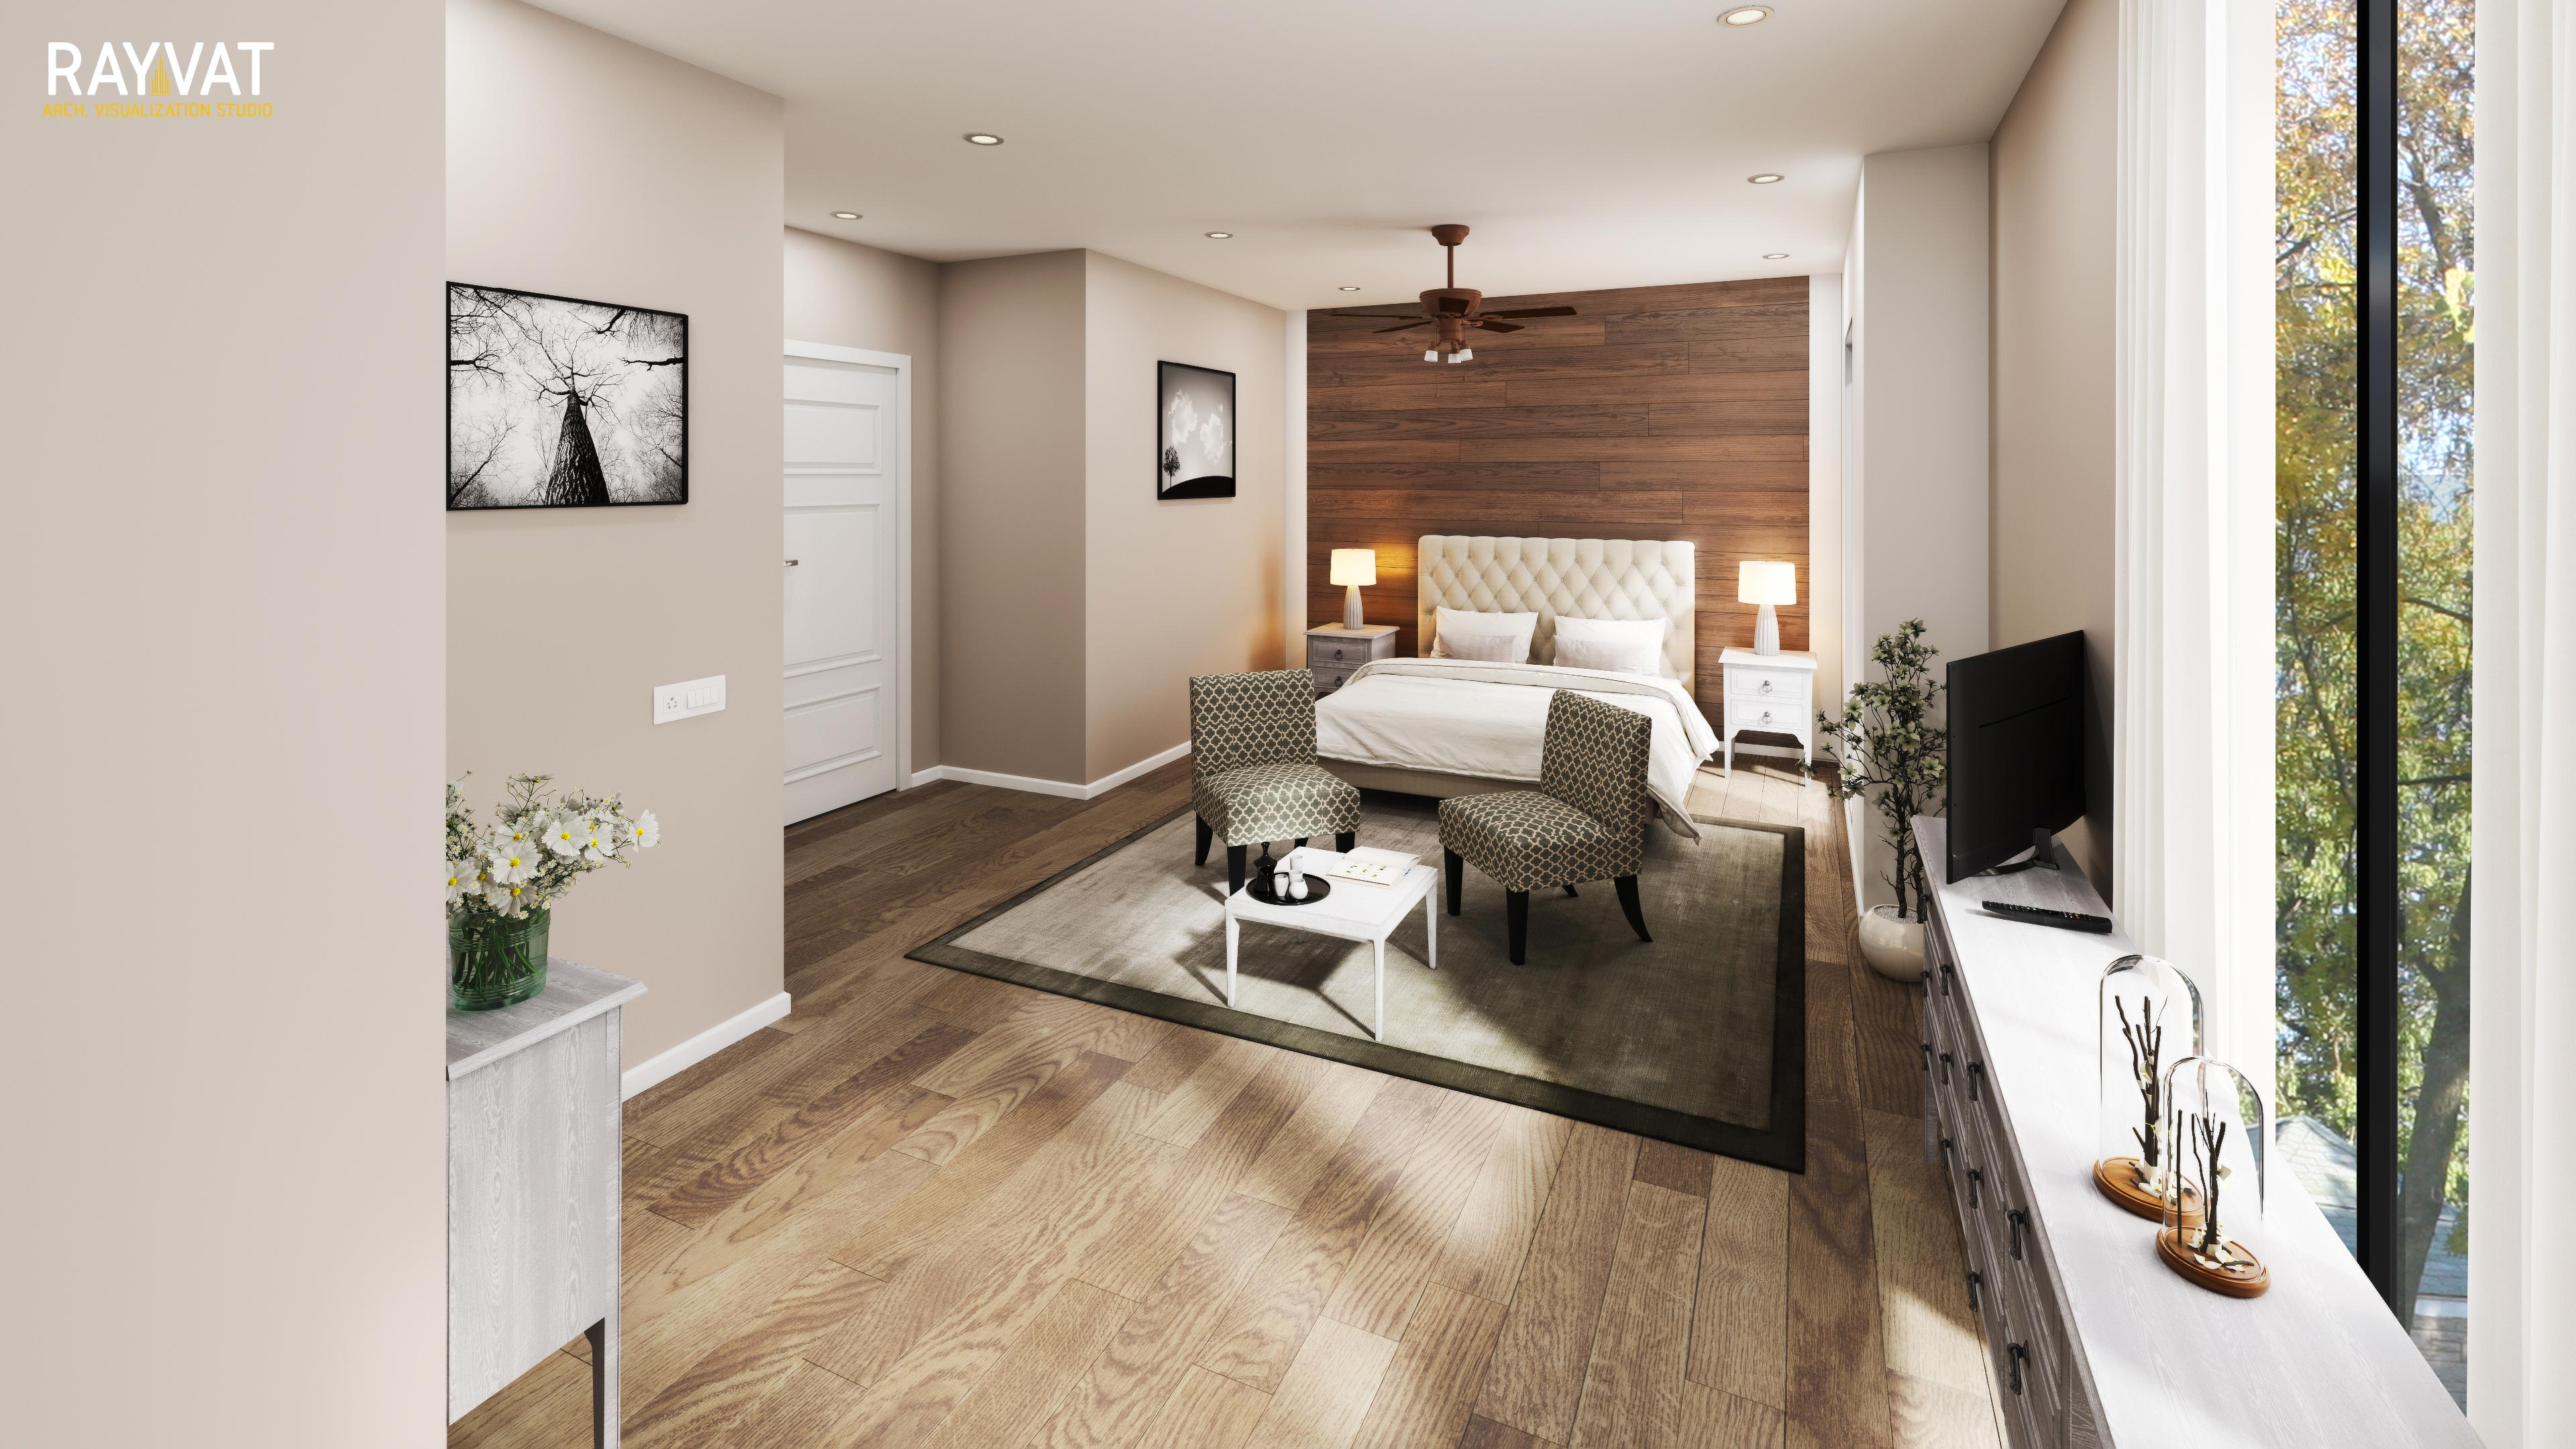 Use light filters in Bedroom CGI to show rooms in the daytime and at night